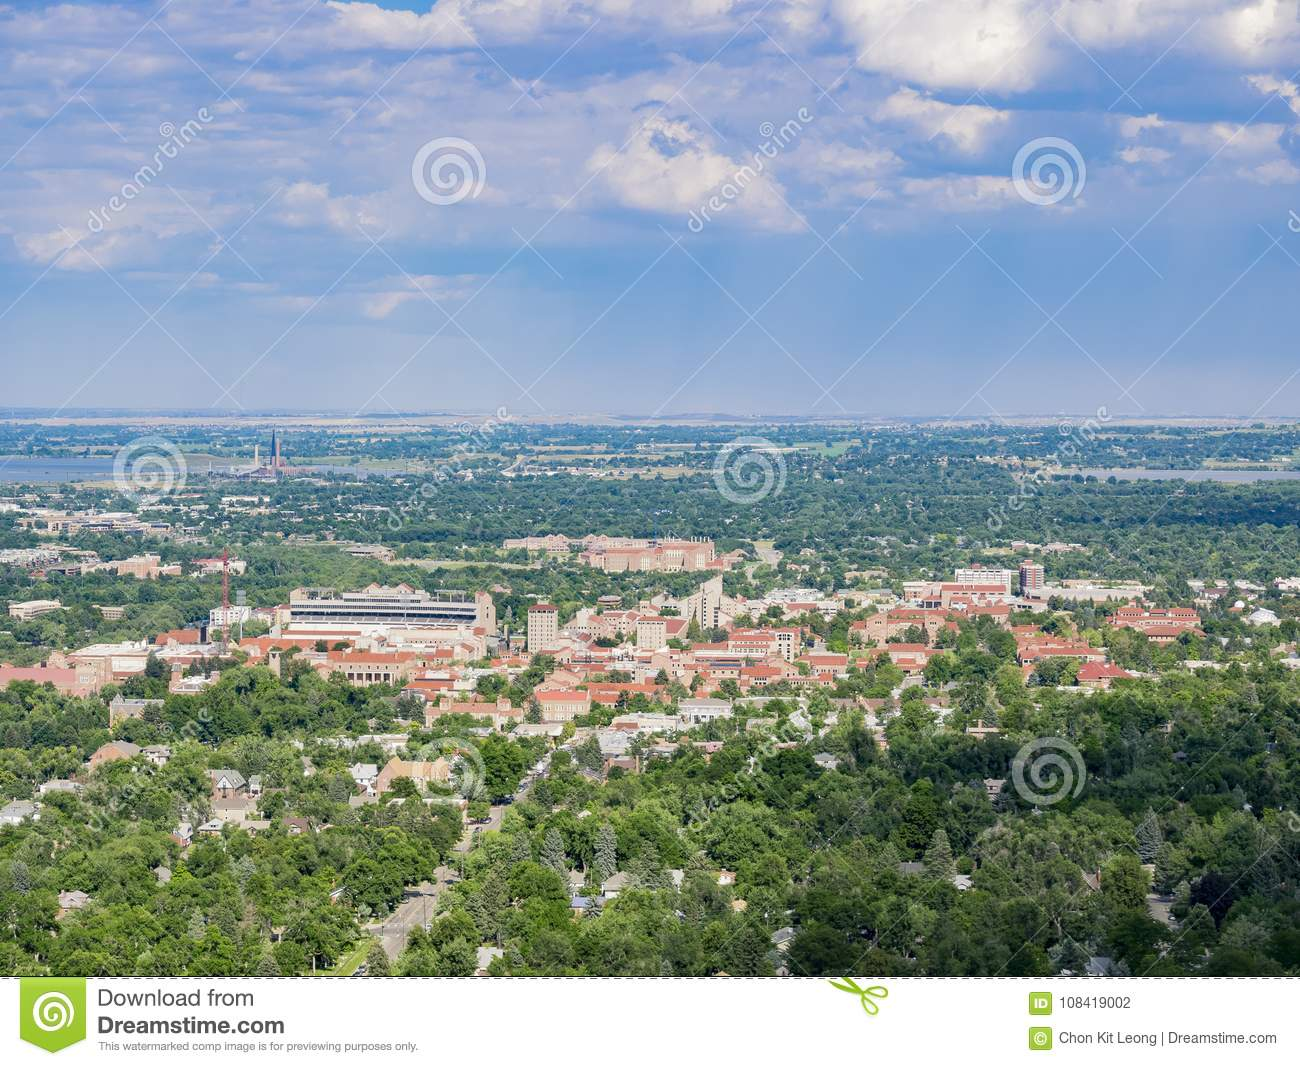 Aerial view of the beautiful University of Colorado Boulder